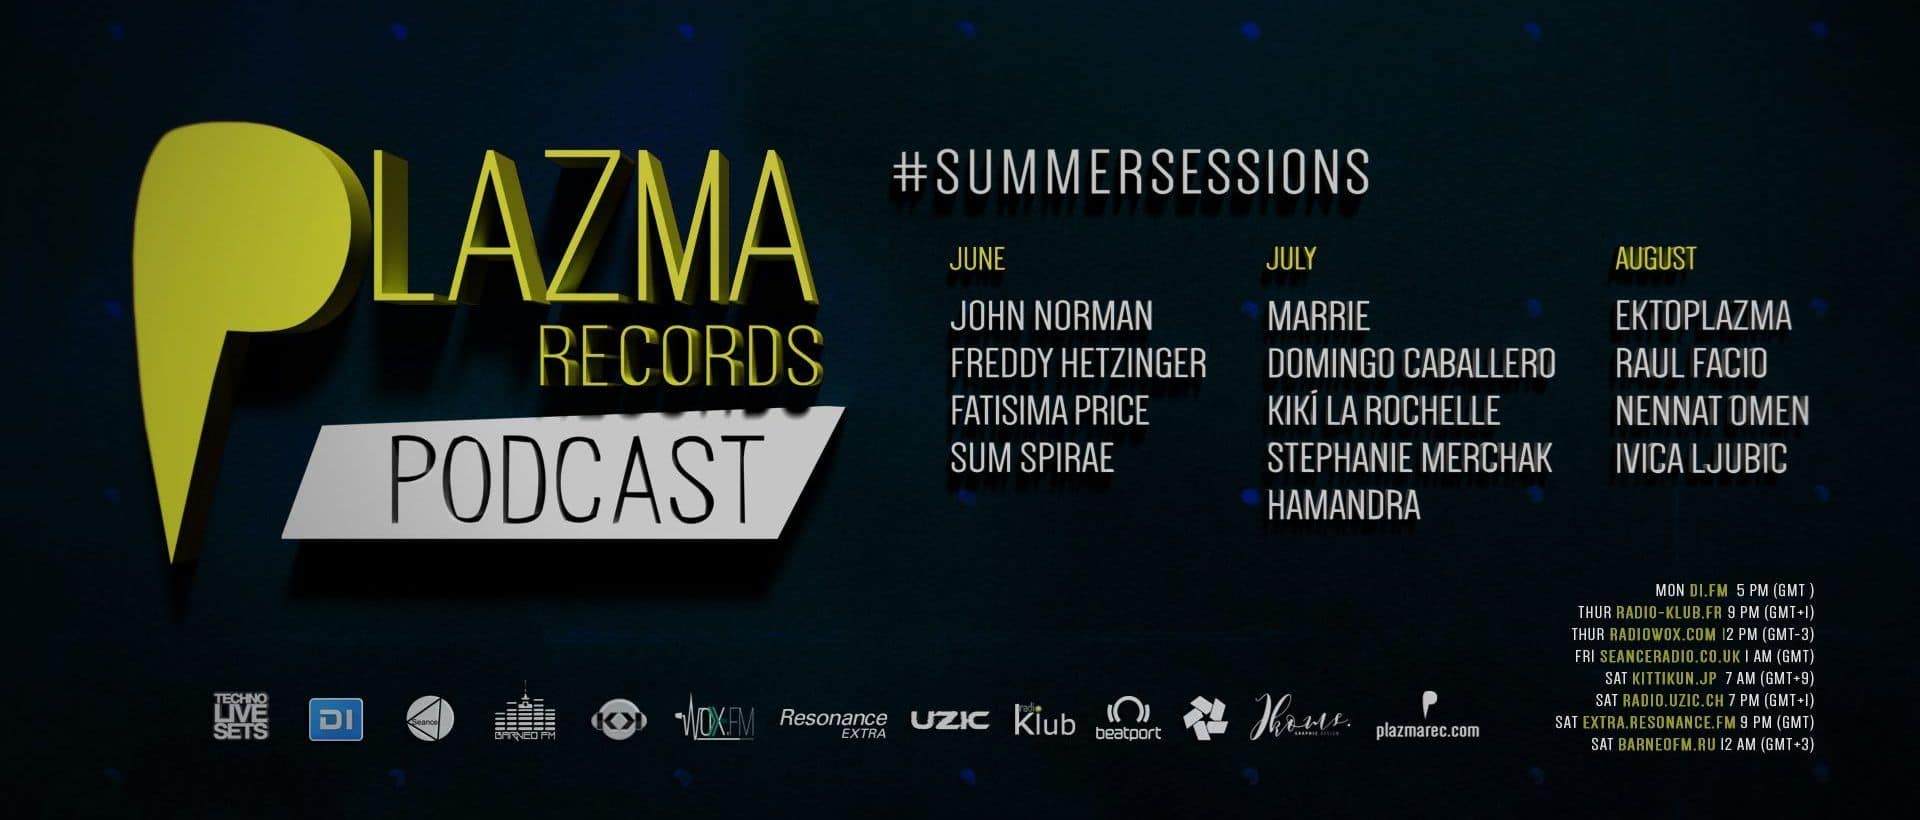 Plazma Records Podcast | Summer Sessions'18